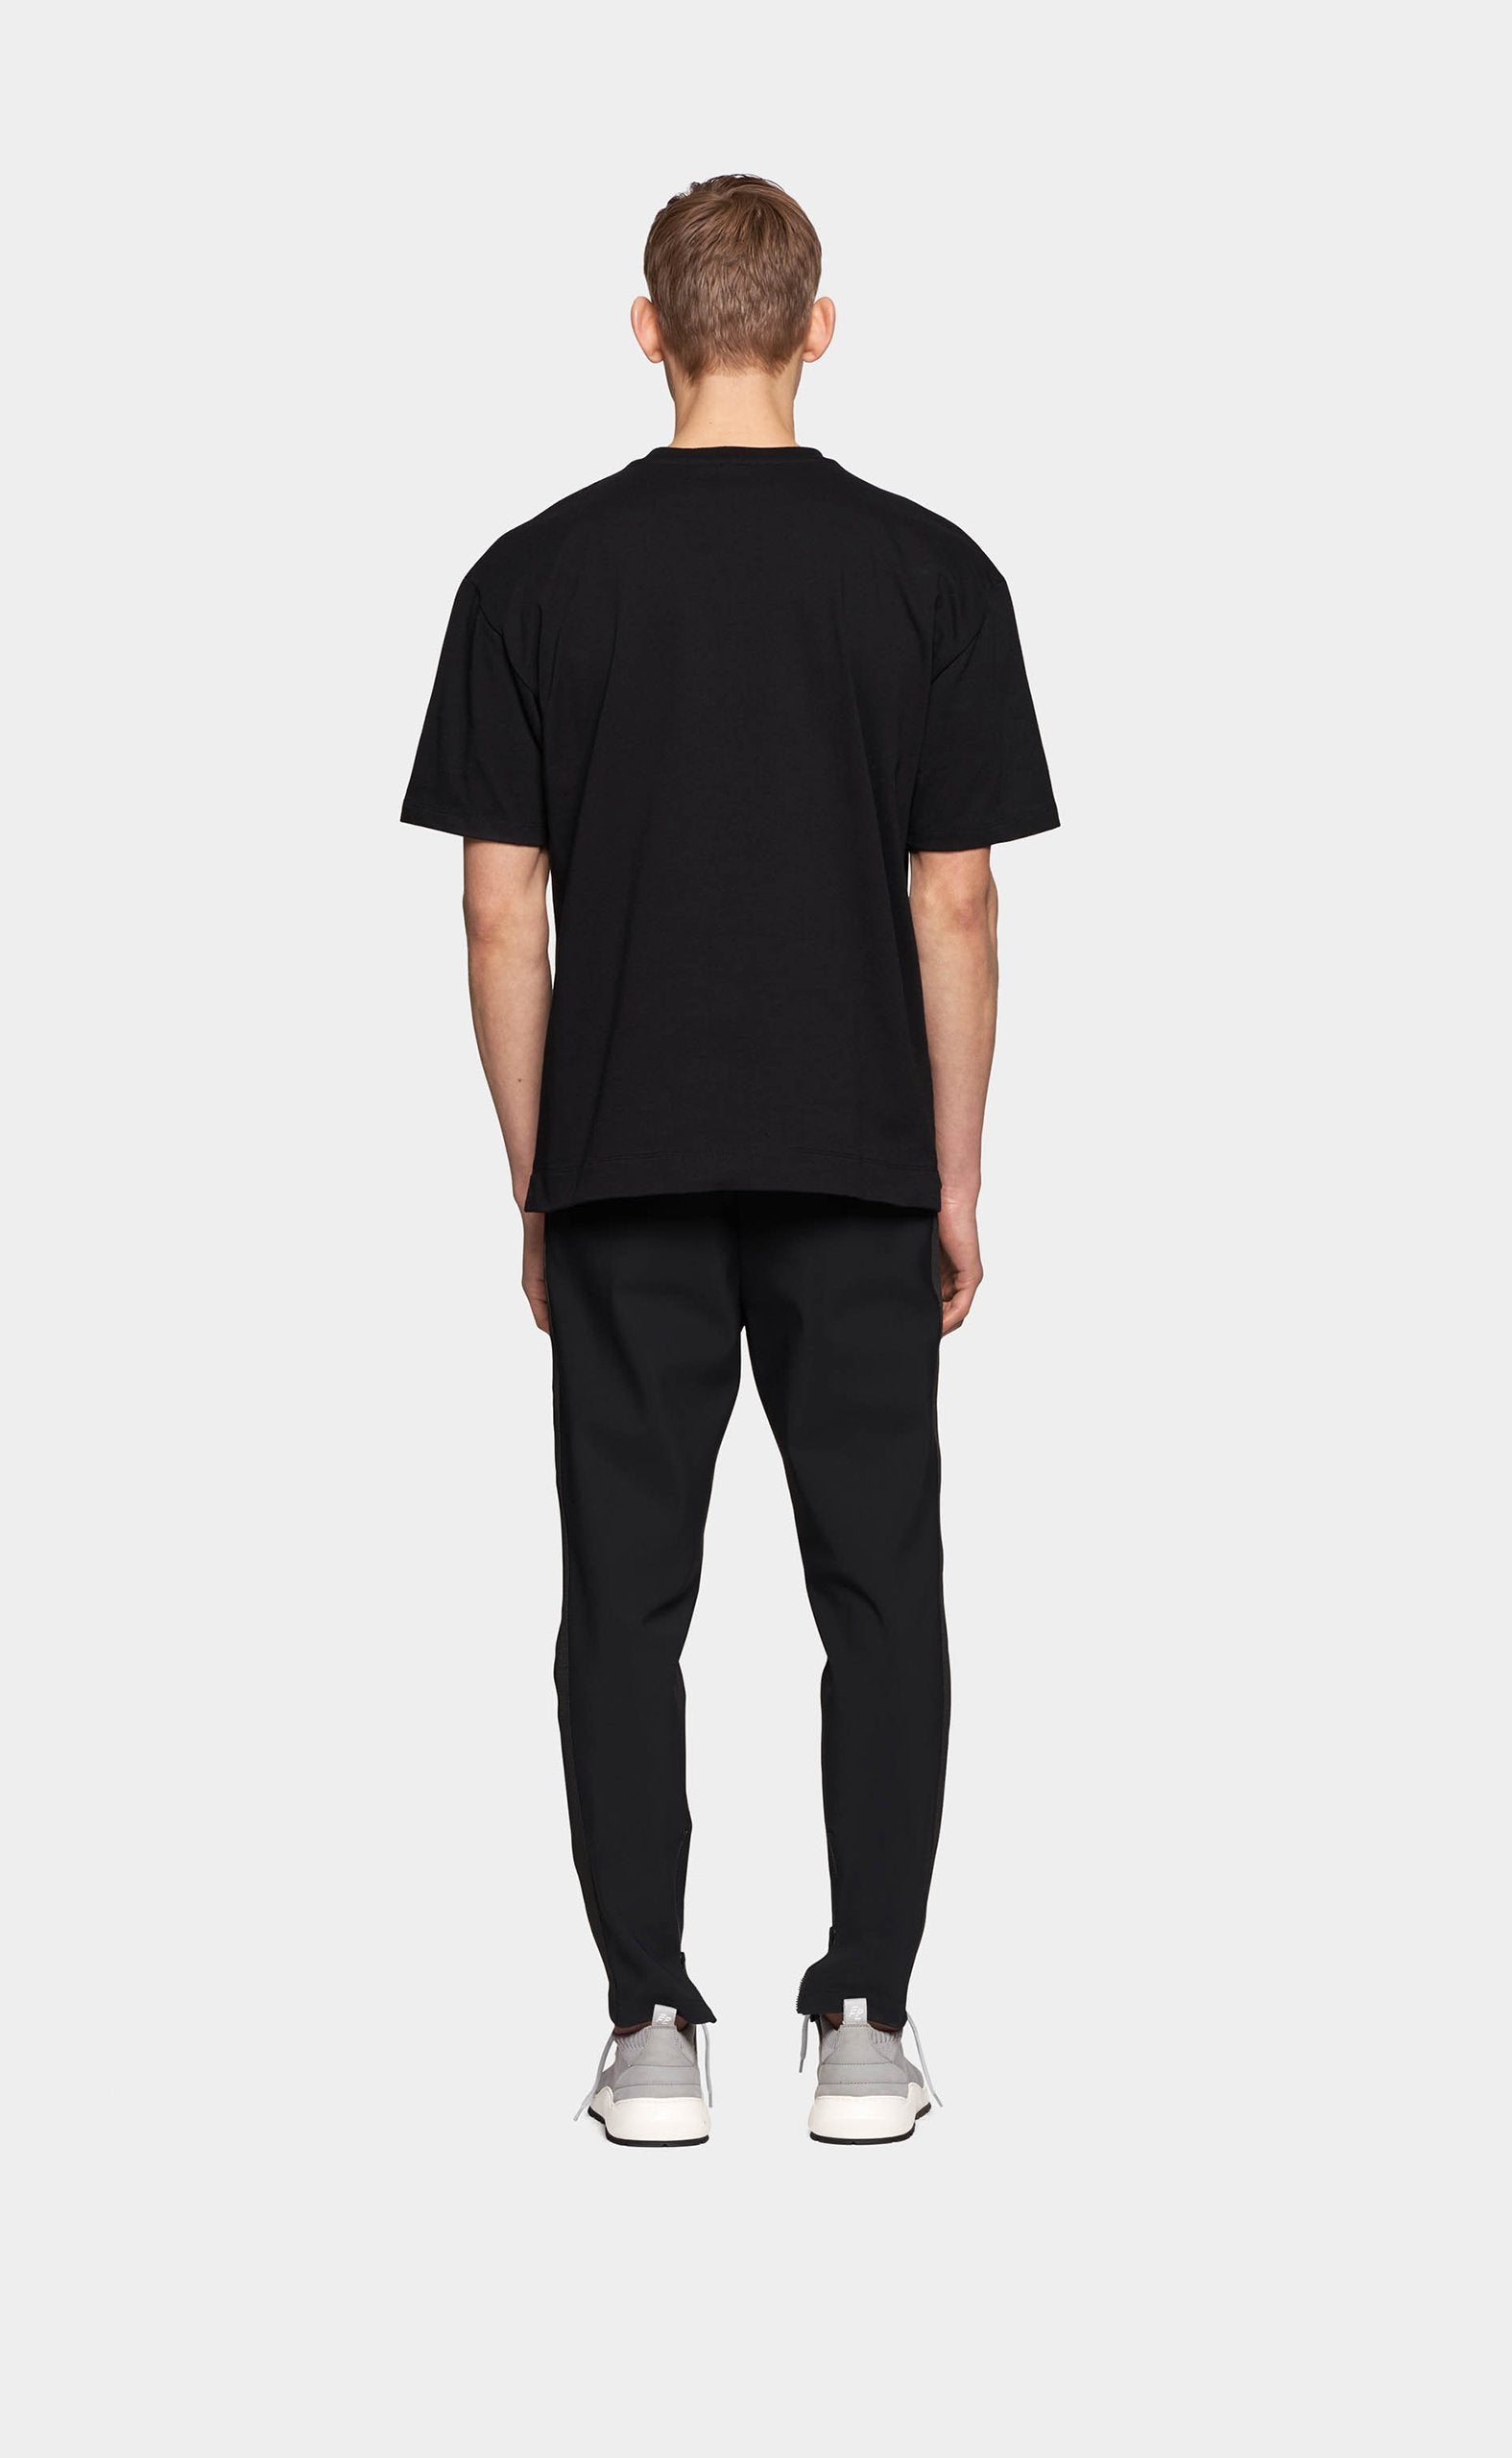 Graphic Tee Wall Street Black